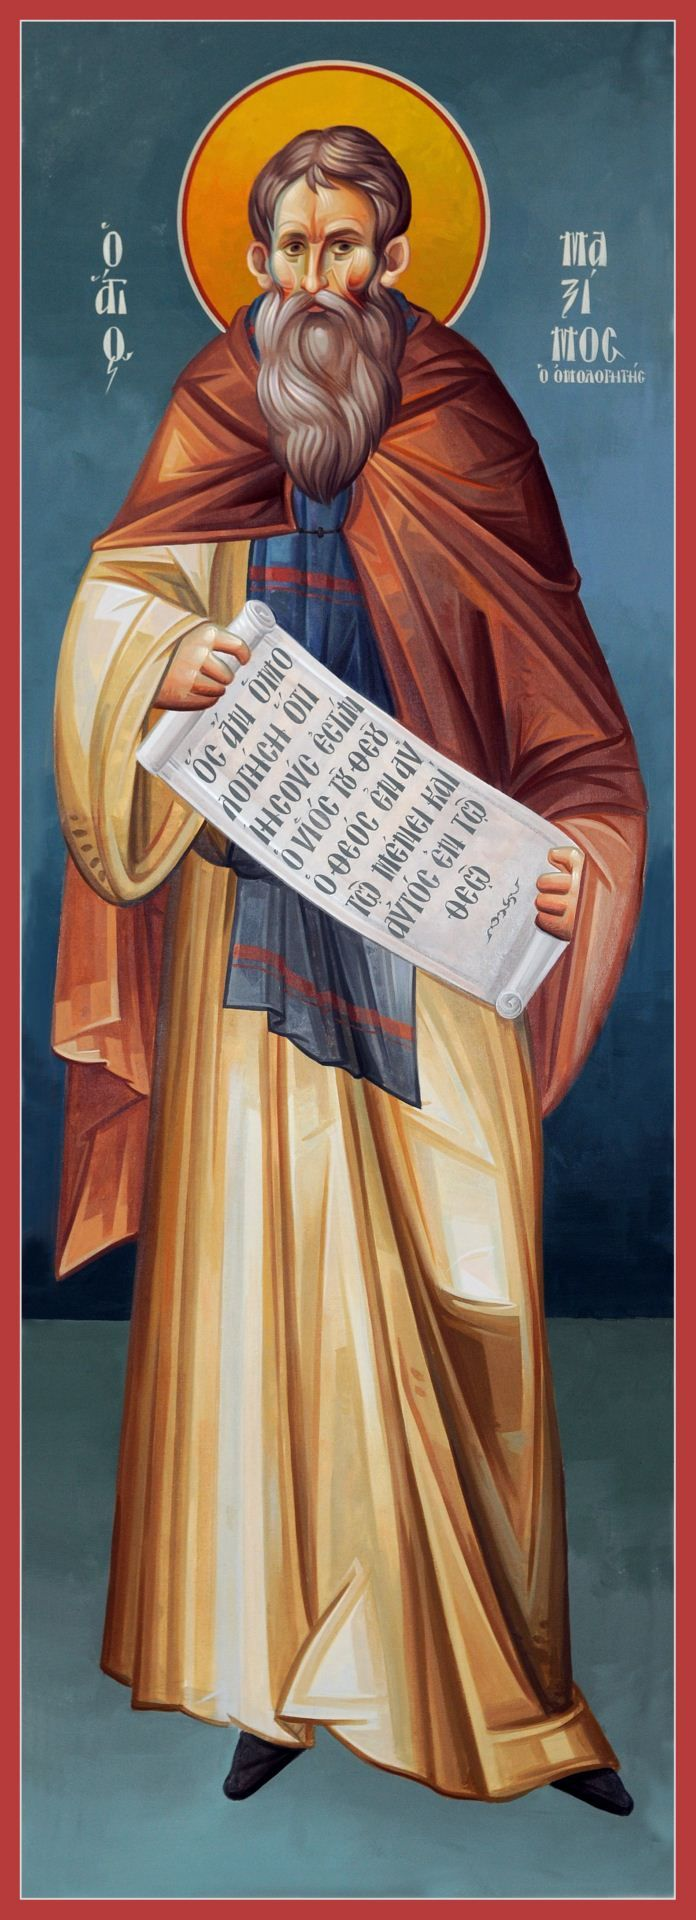 St. Maximos the Confessor